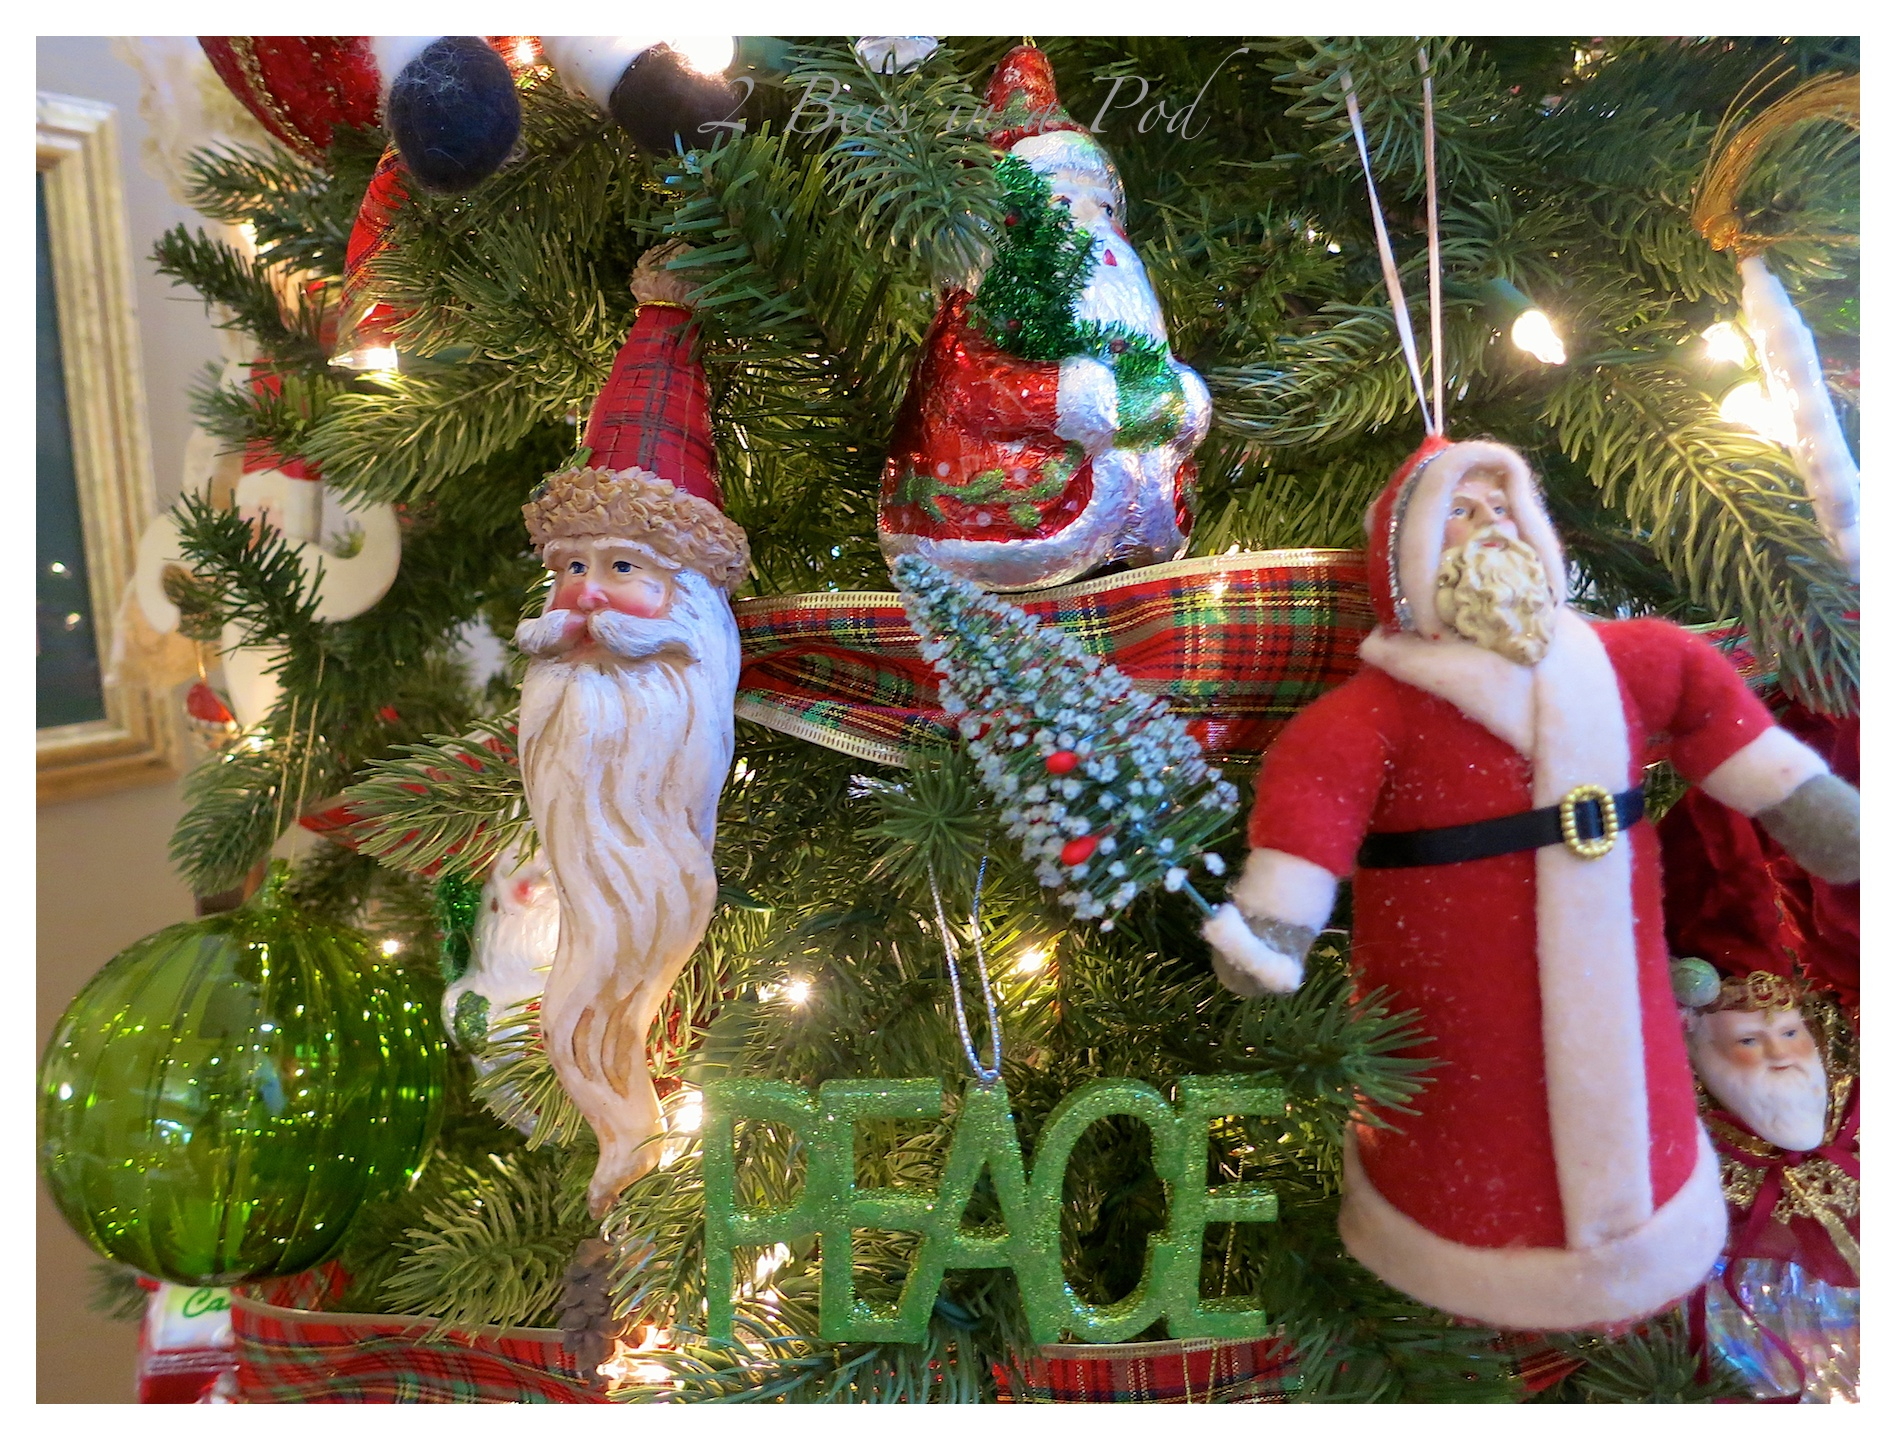 Christmas Home Tour 2014 - traditional green and red decor. Also rustic and vintage decor. Lots of Santas, vintage Buddy L truck and tractor